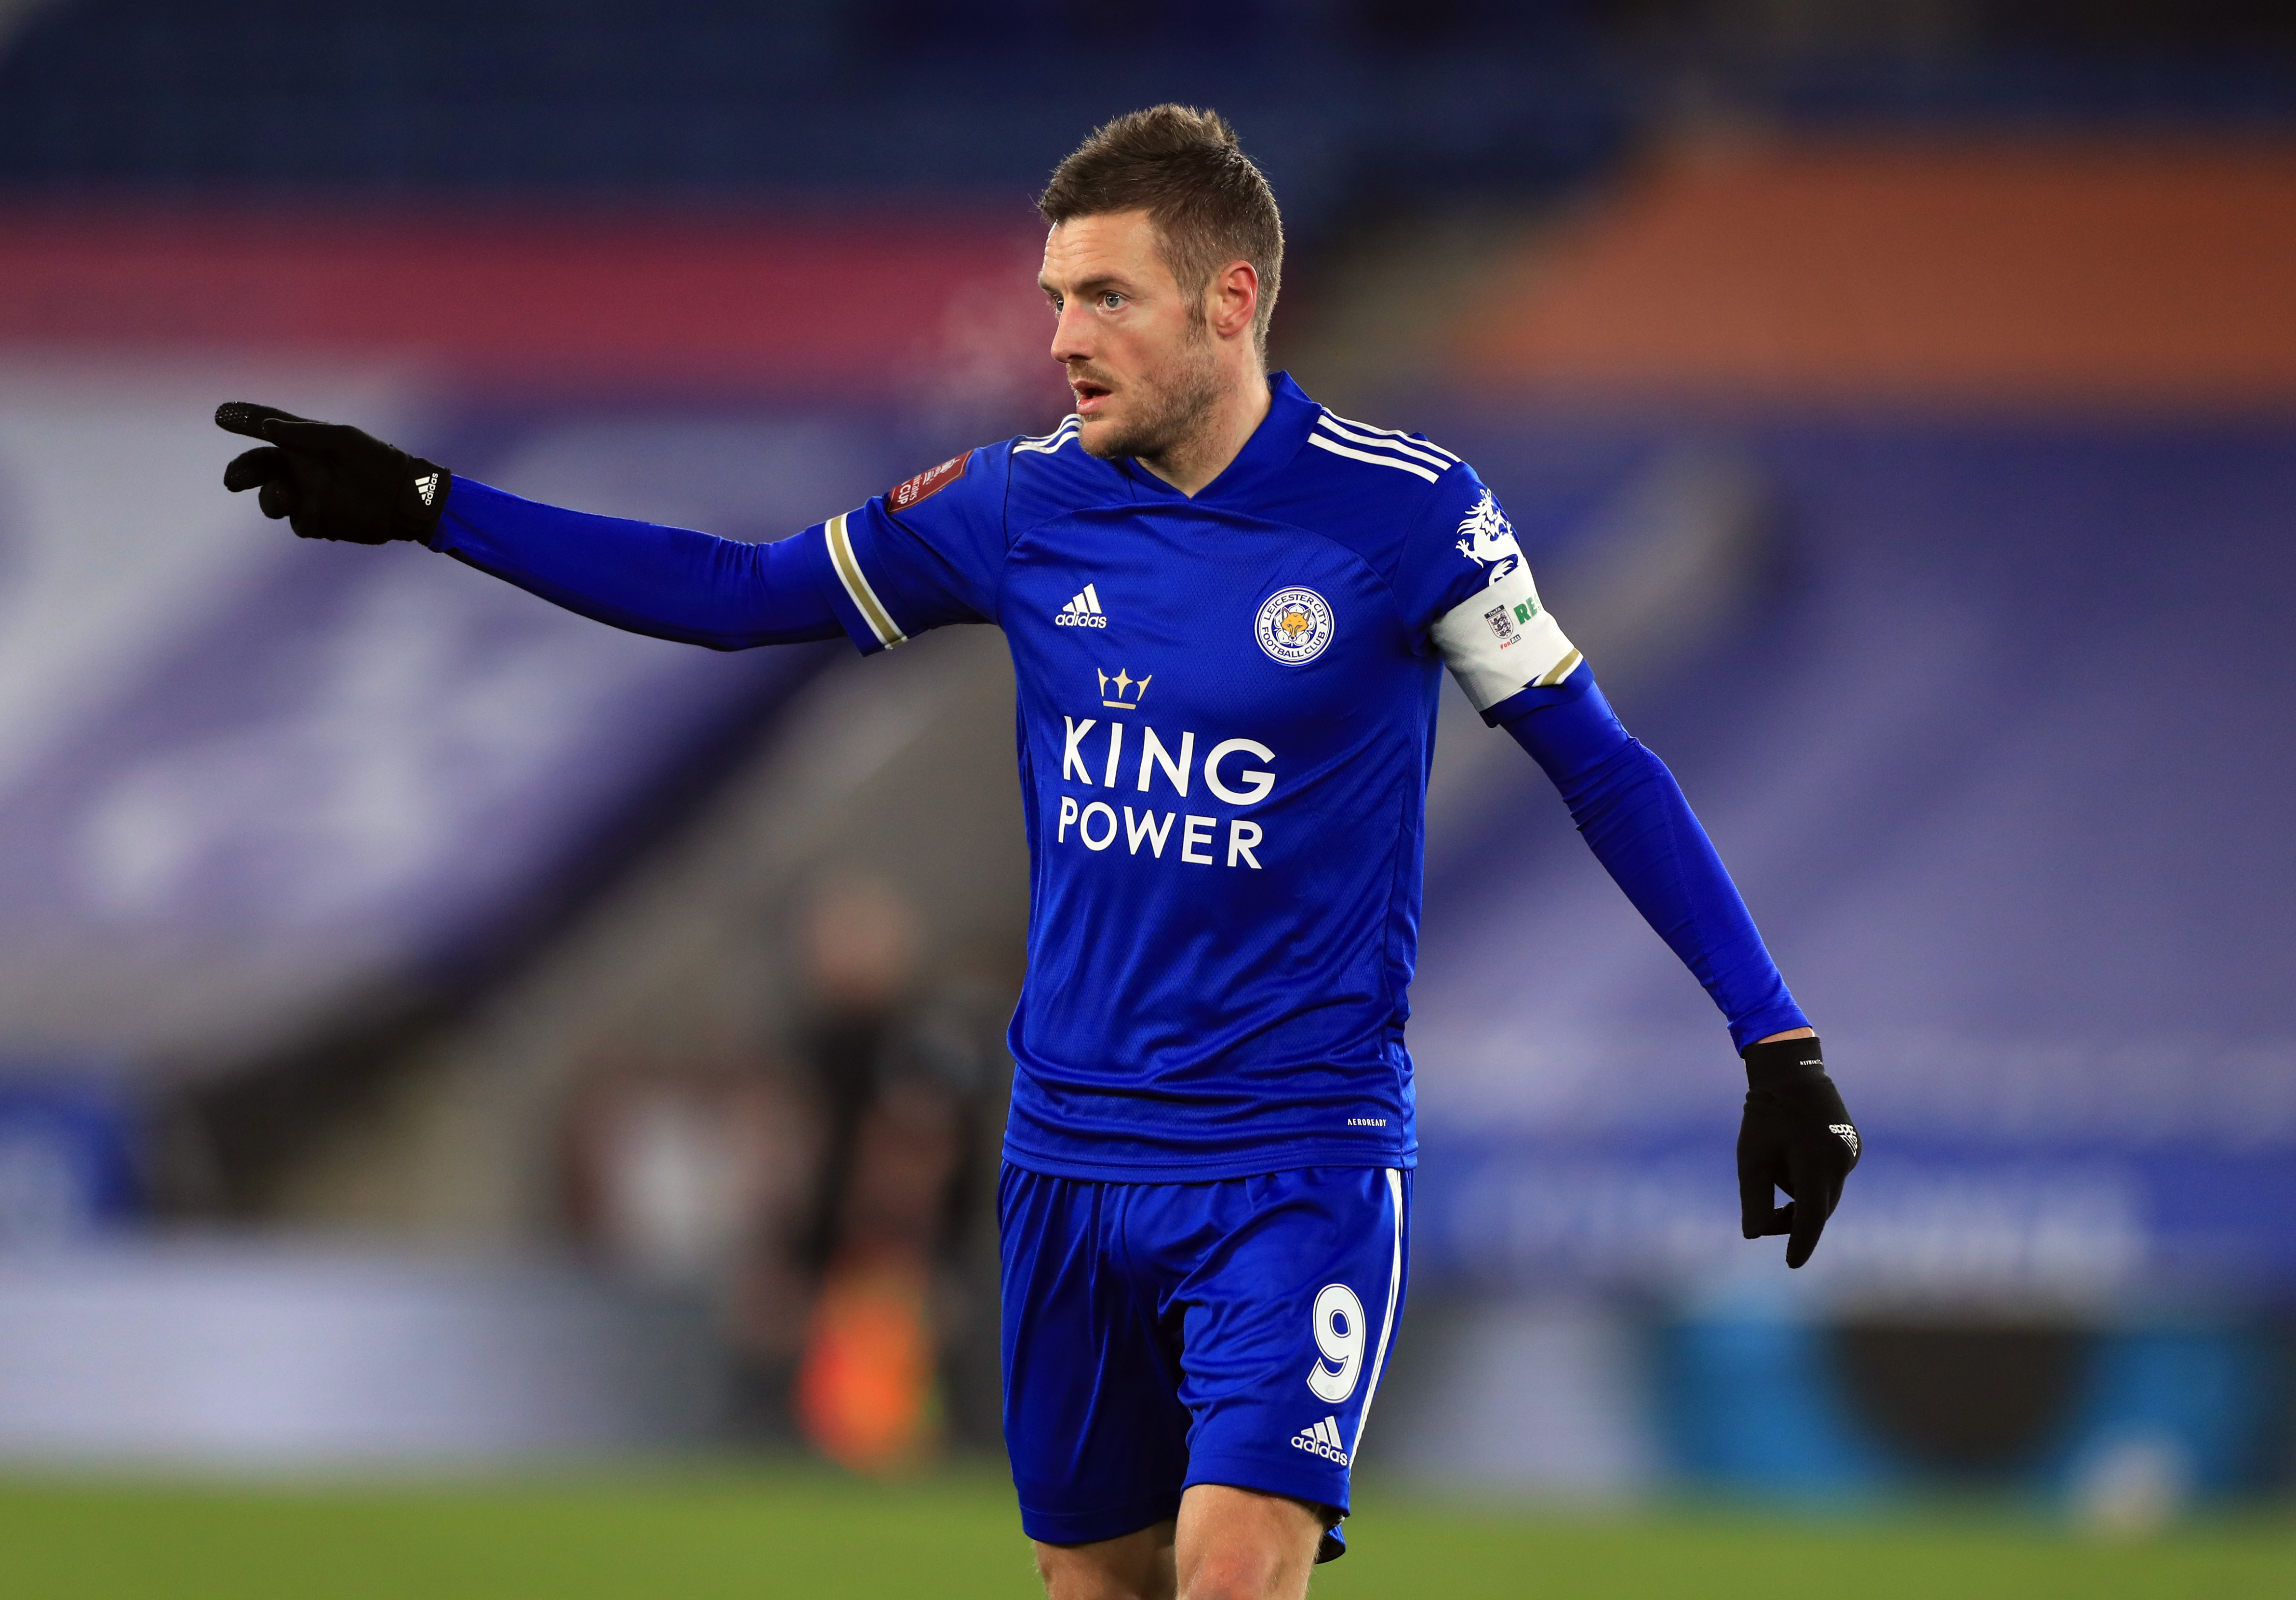 Jamie Vardy proved an inspired signing for the Foxes